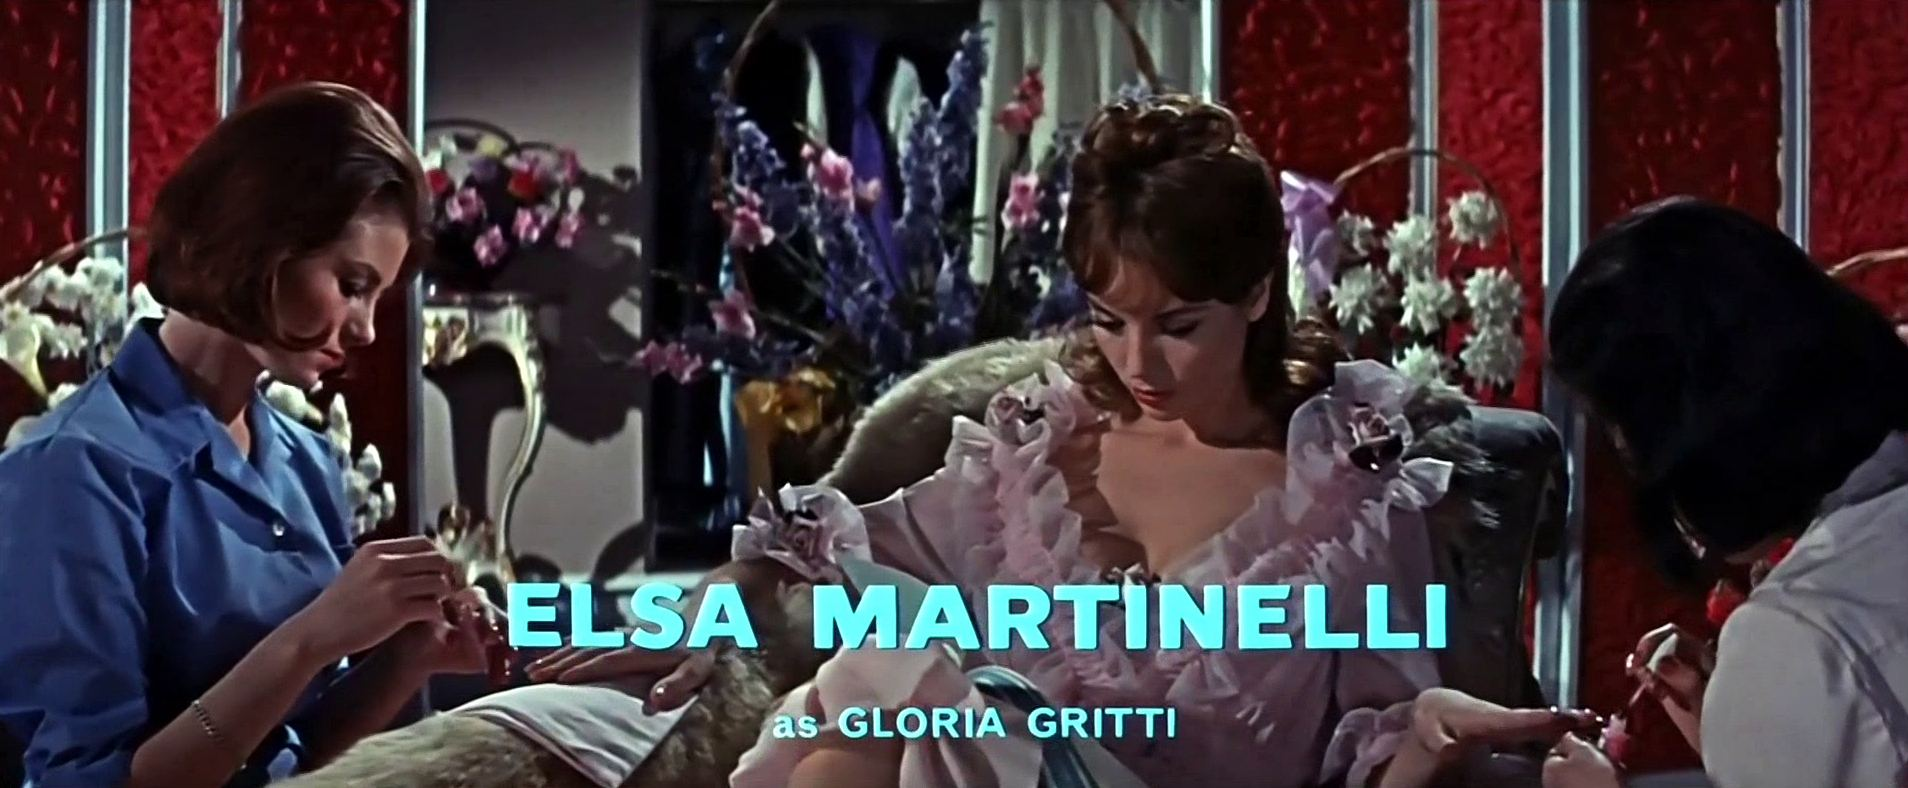 Main title from The VIPs (1963) (6). Elsa Martinelli as Gloria Gritti